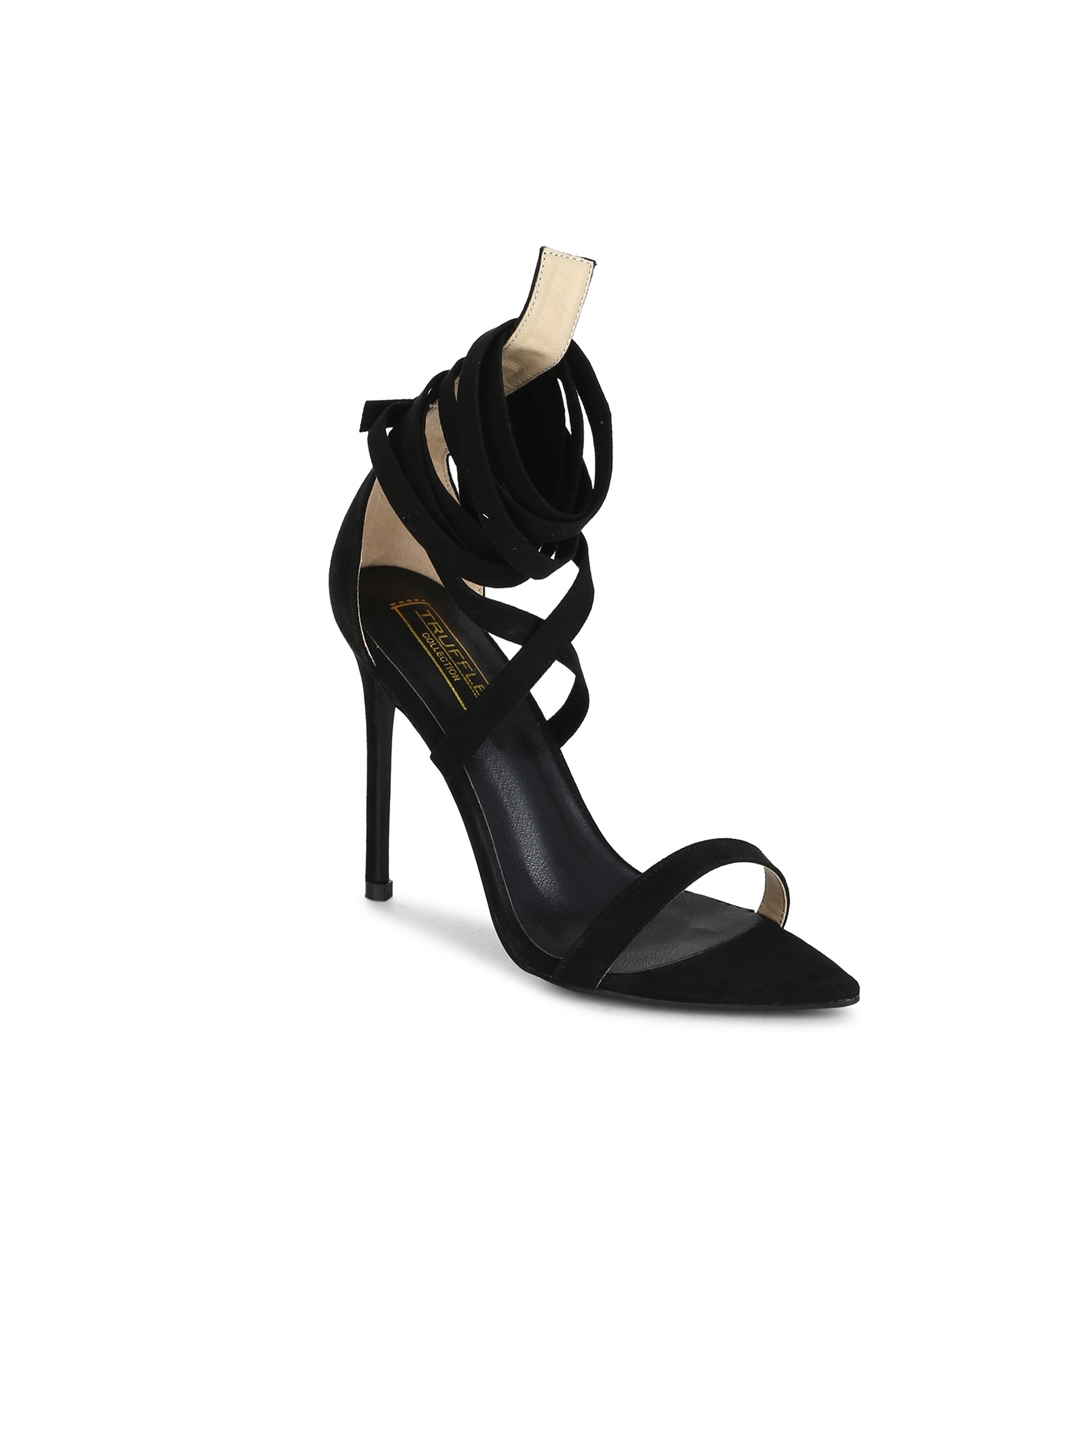 cdd03c9a74e Buy Truffle Collection Women Black Solid Sandals - Heels for Women ...